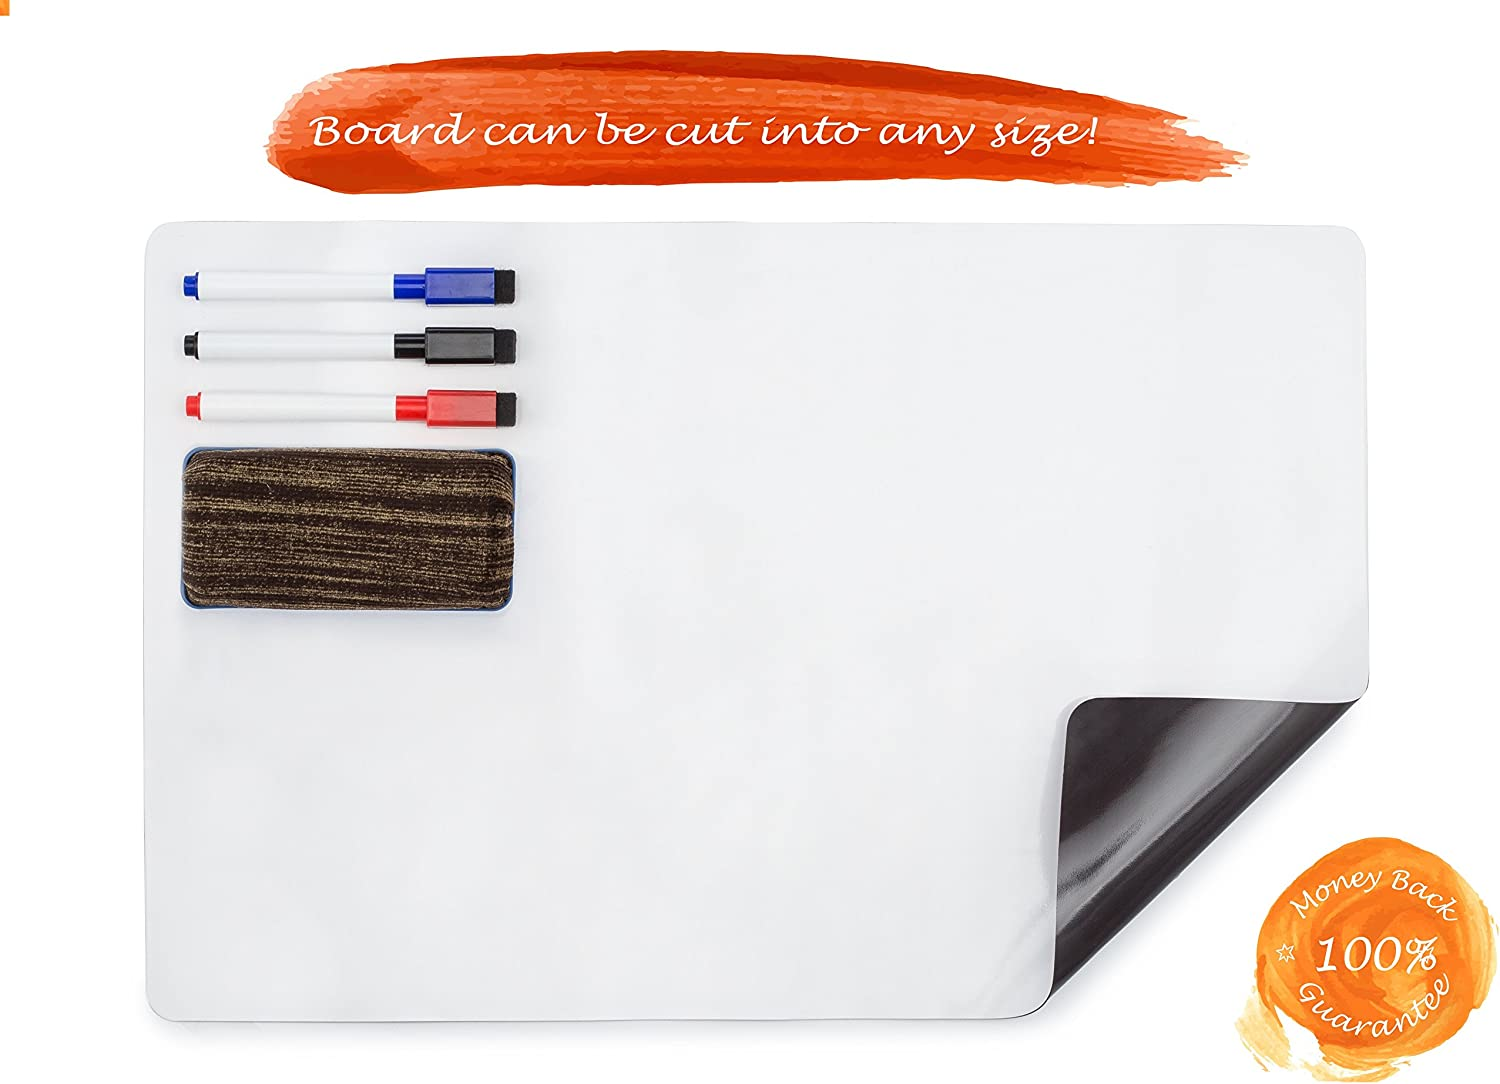 17 x 11 Refrigerator Whiteboard Day Planner Messages Magnetic Dry Erase Board for Fridge to-Do Lists with 3 Markers /& Eraser Ideal for Weekly Reminders